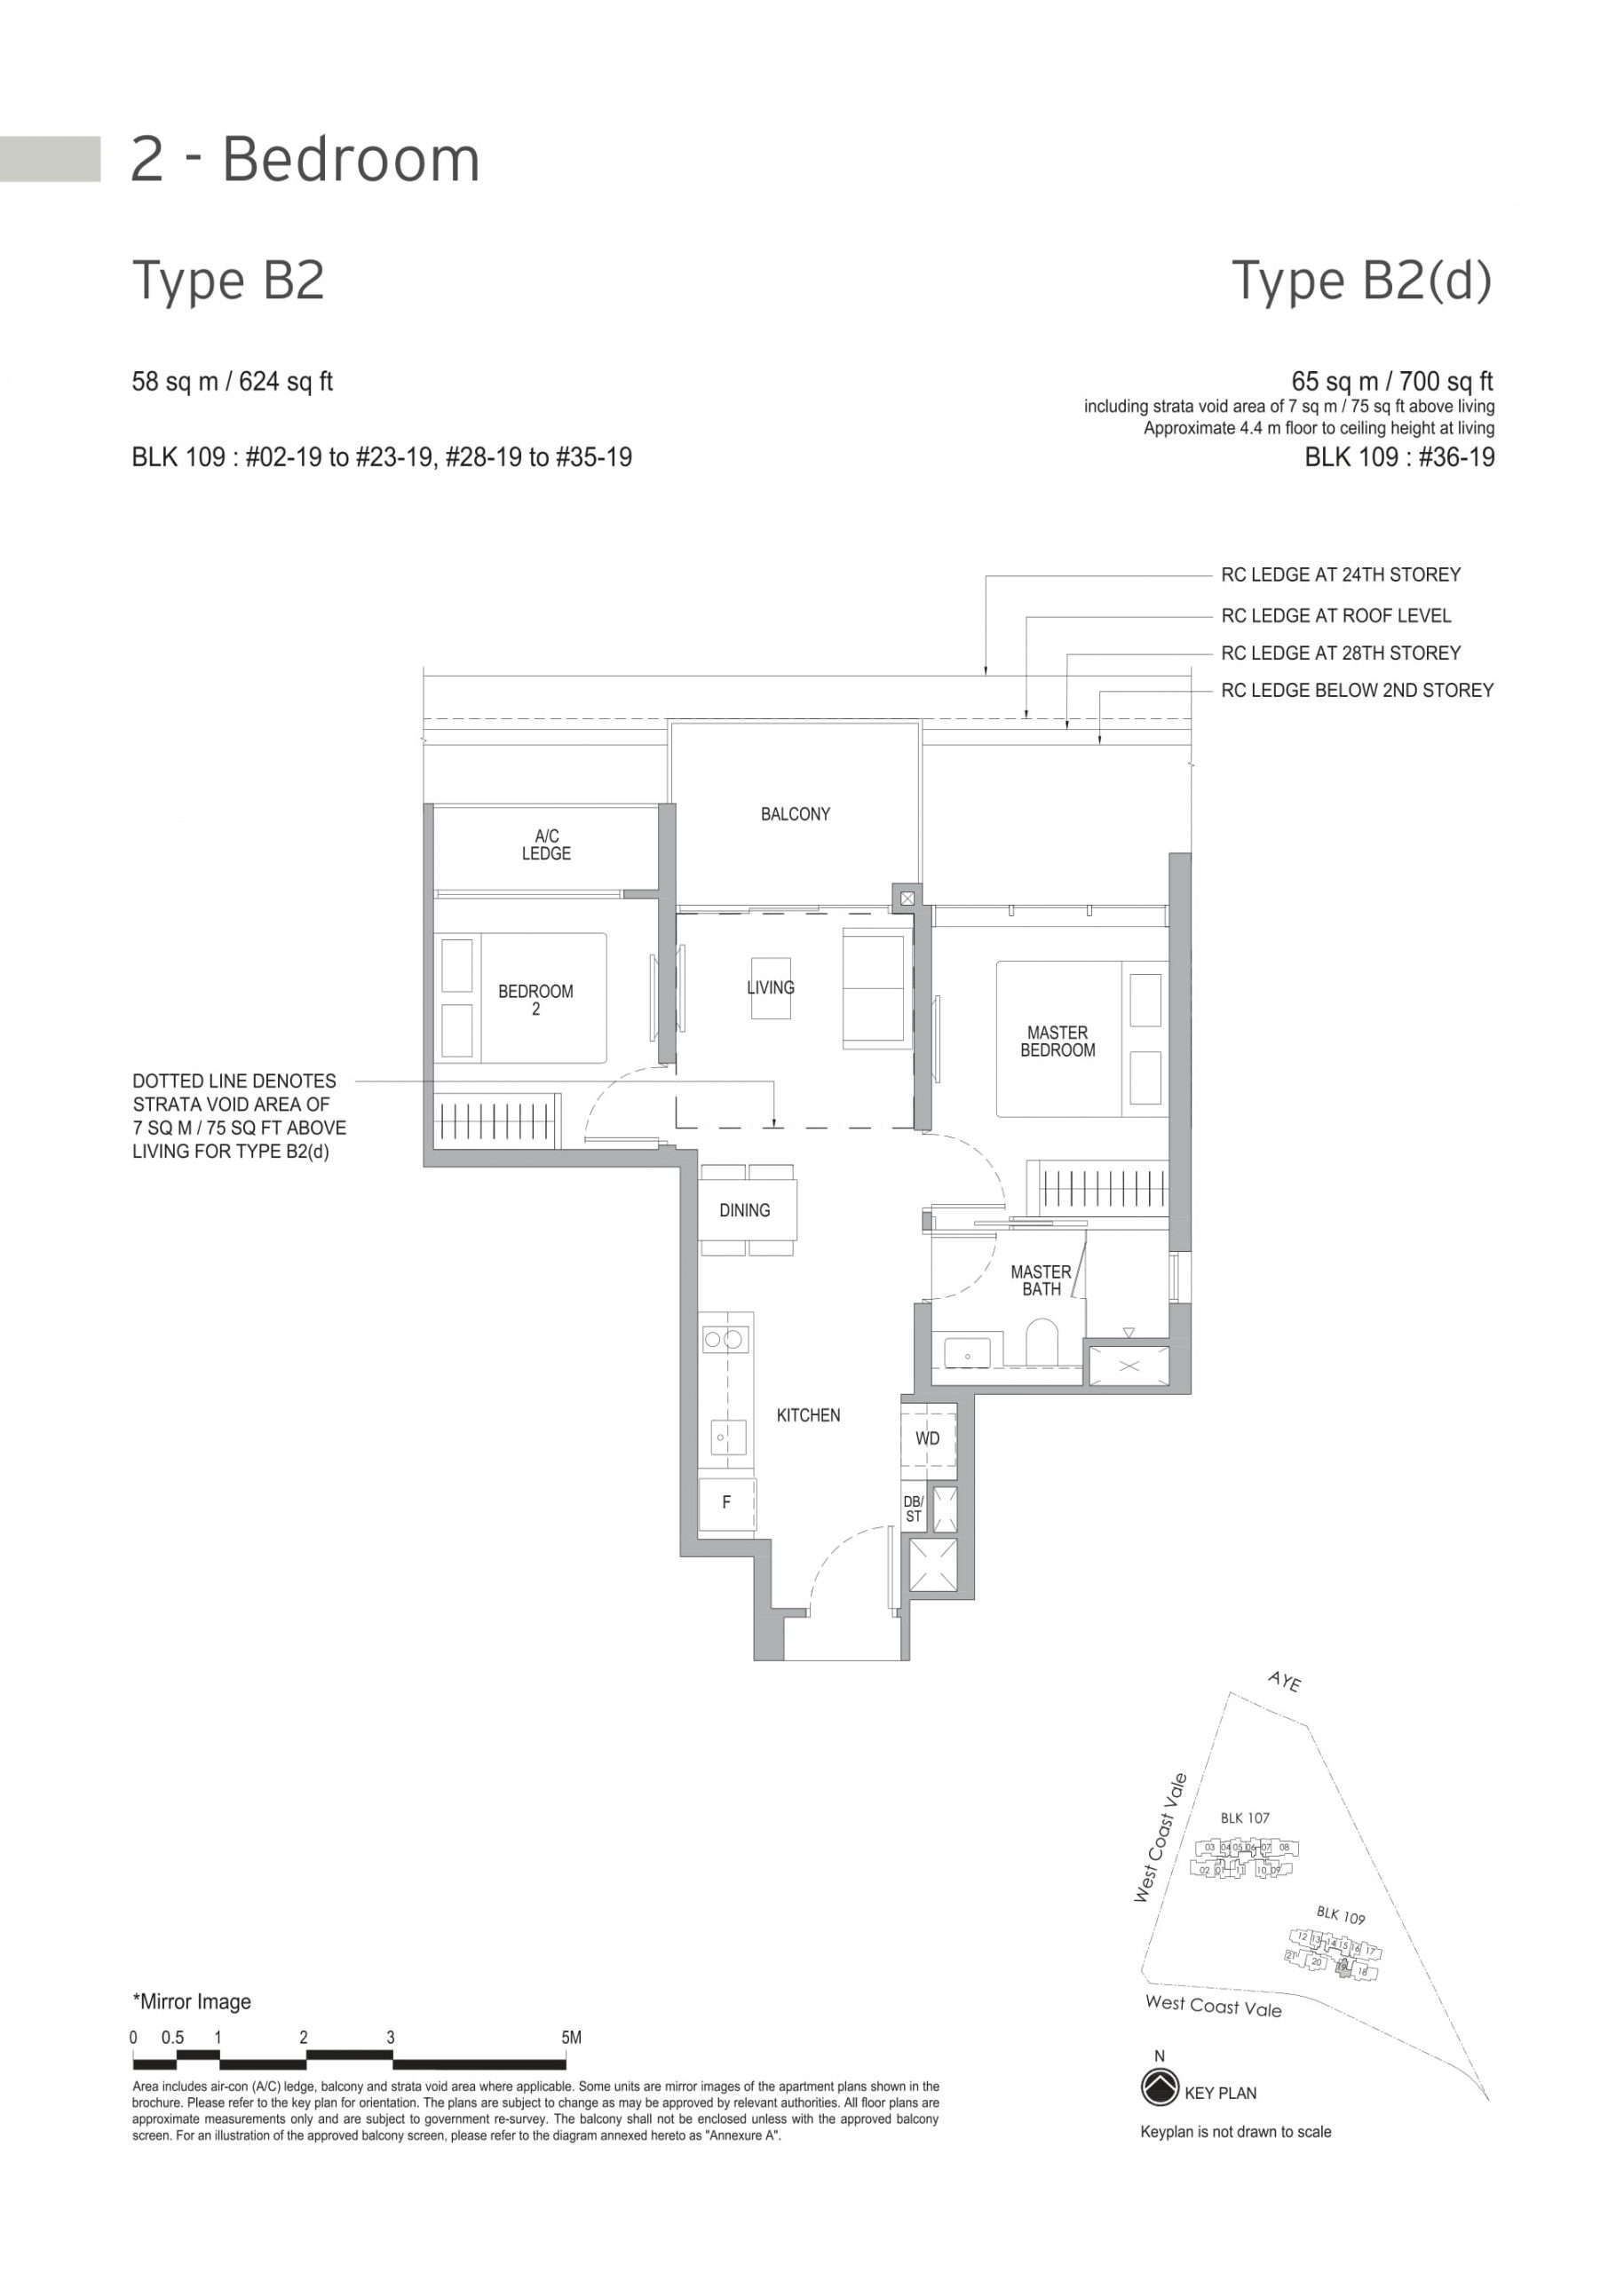 Whistler Grand's two-bedroom types